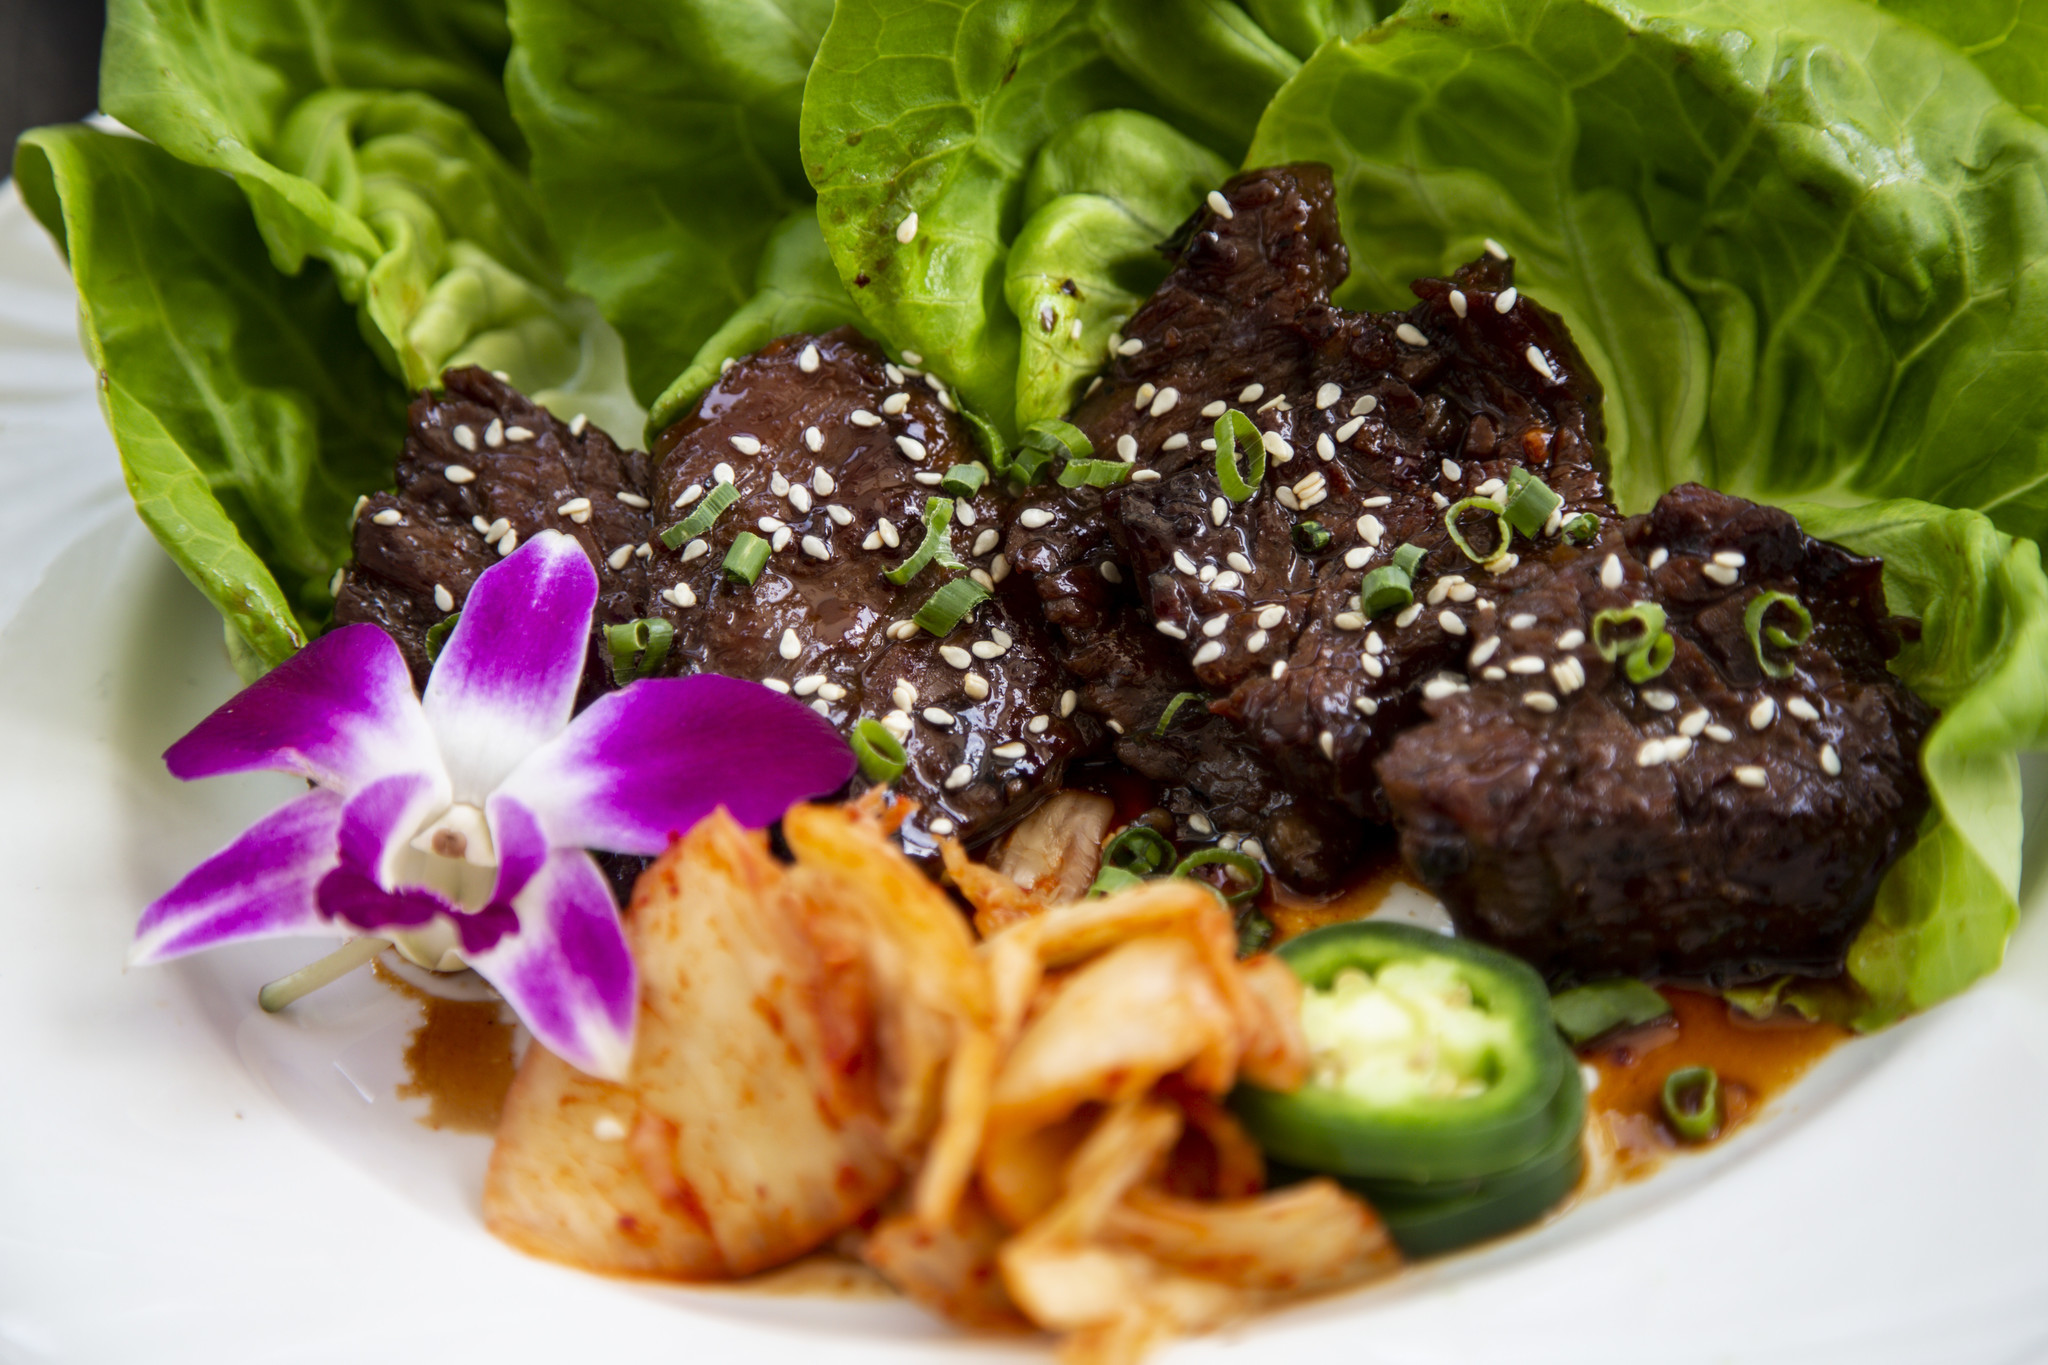 HONOLULU, HI - AUGUST 22: Kal-bi lettuce wraps, photographed poolside at Sheraton Princess Kaiulani